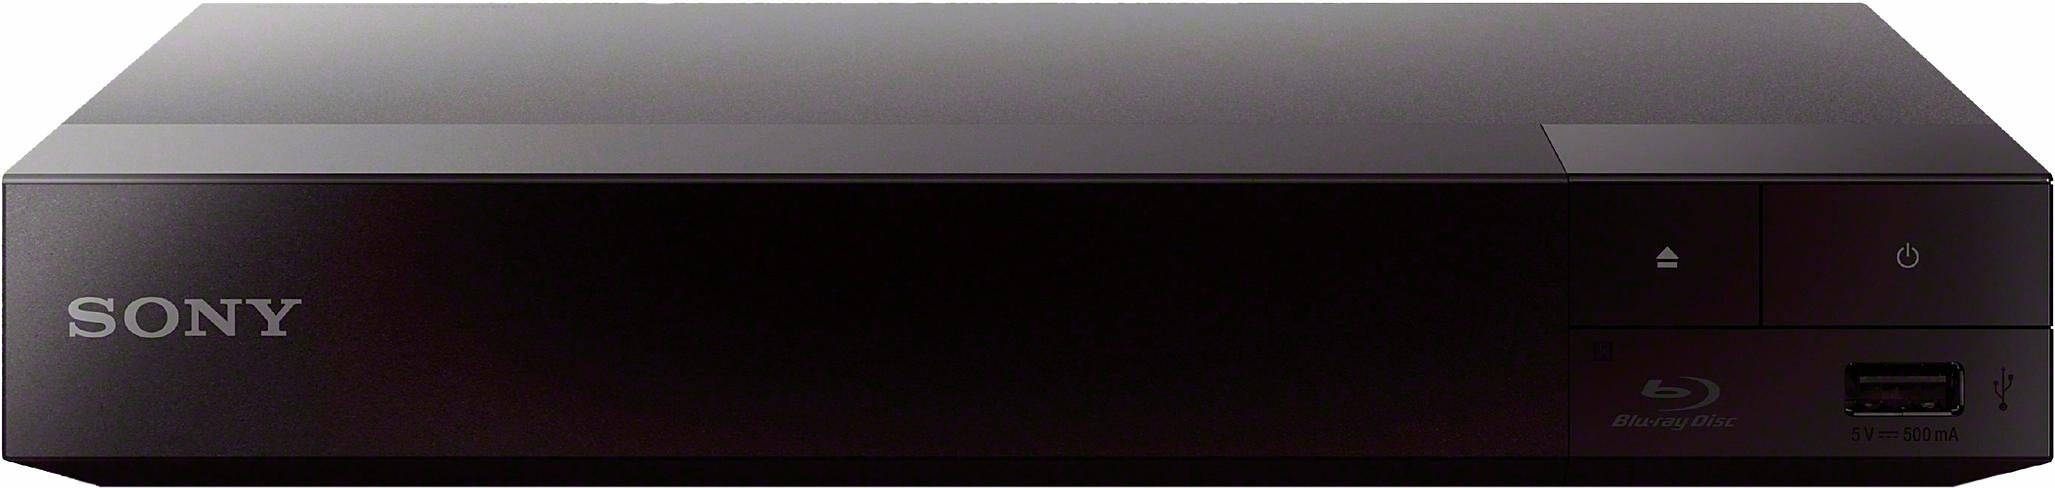 Sony BDP-S1700 Blu-ray-Player, 1080p (Full HD)